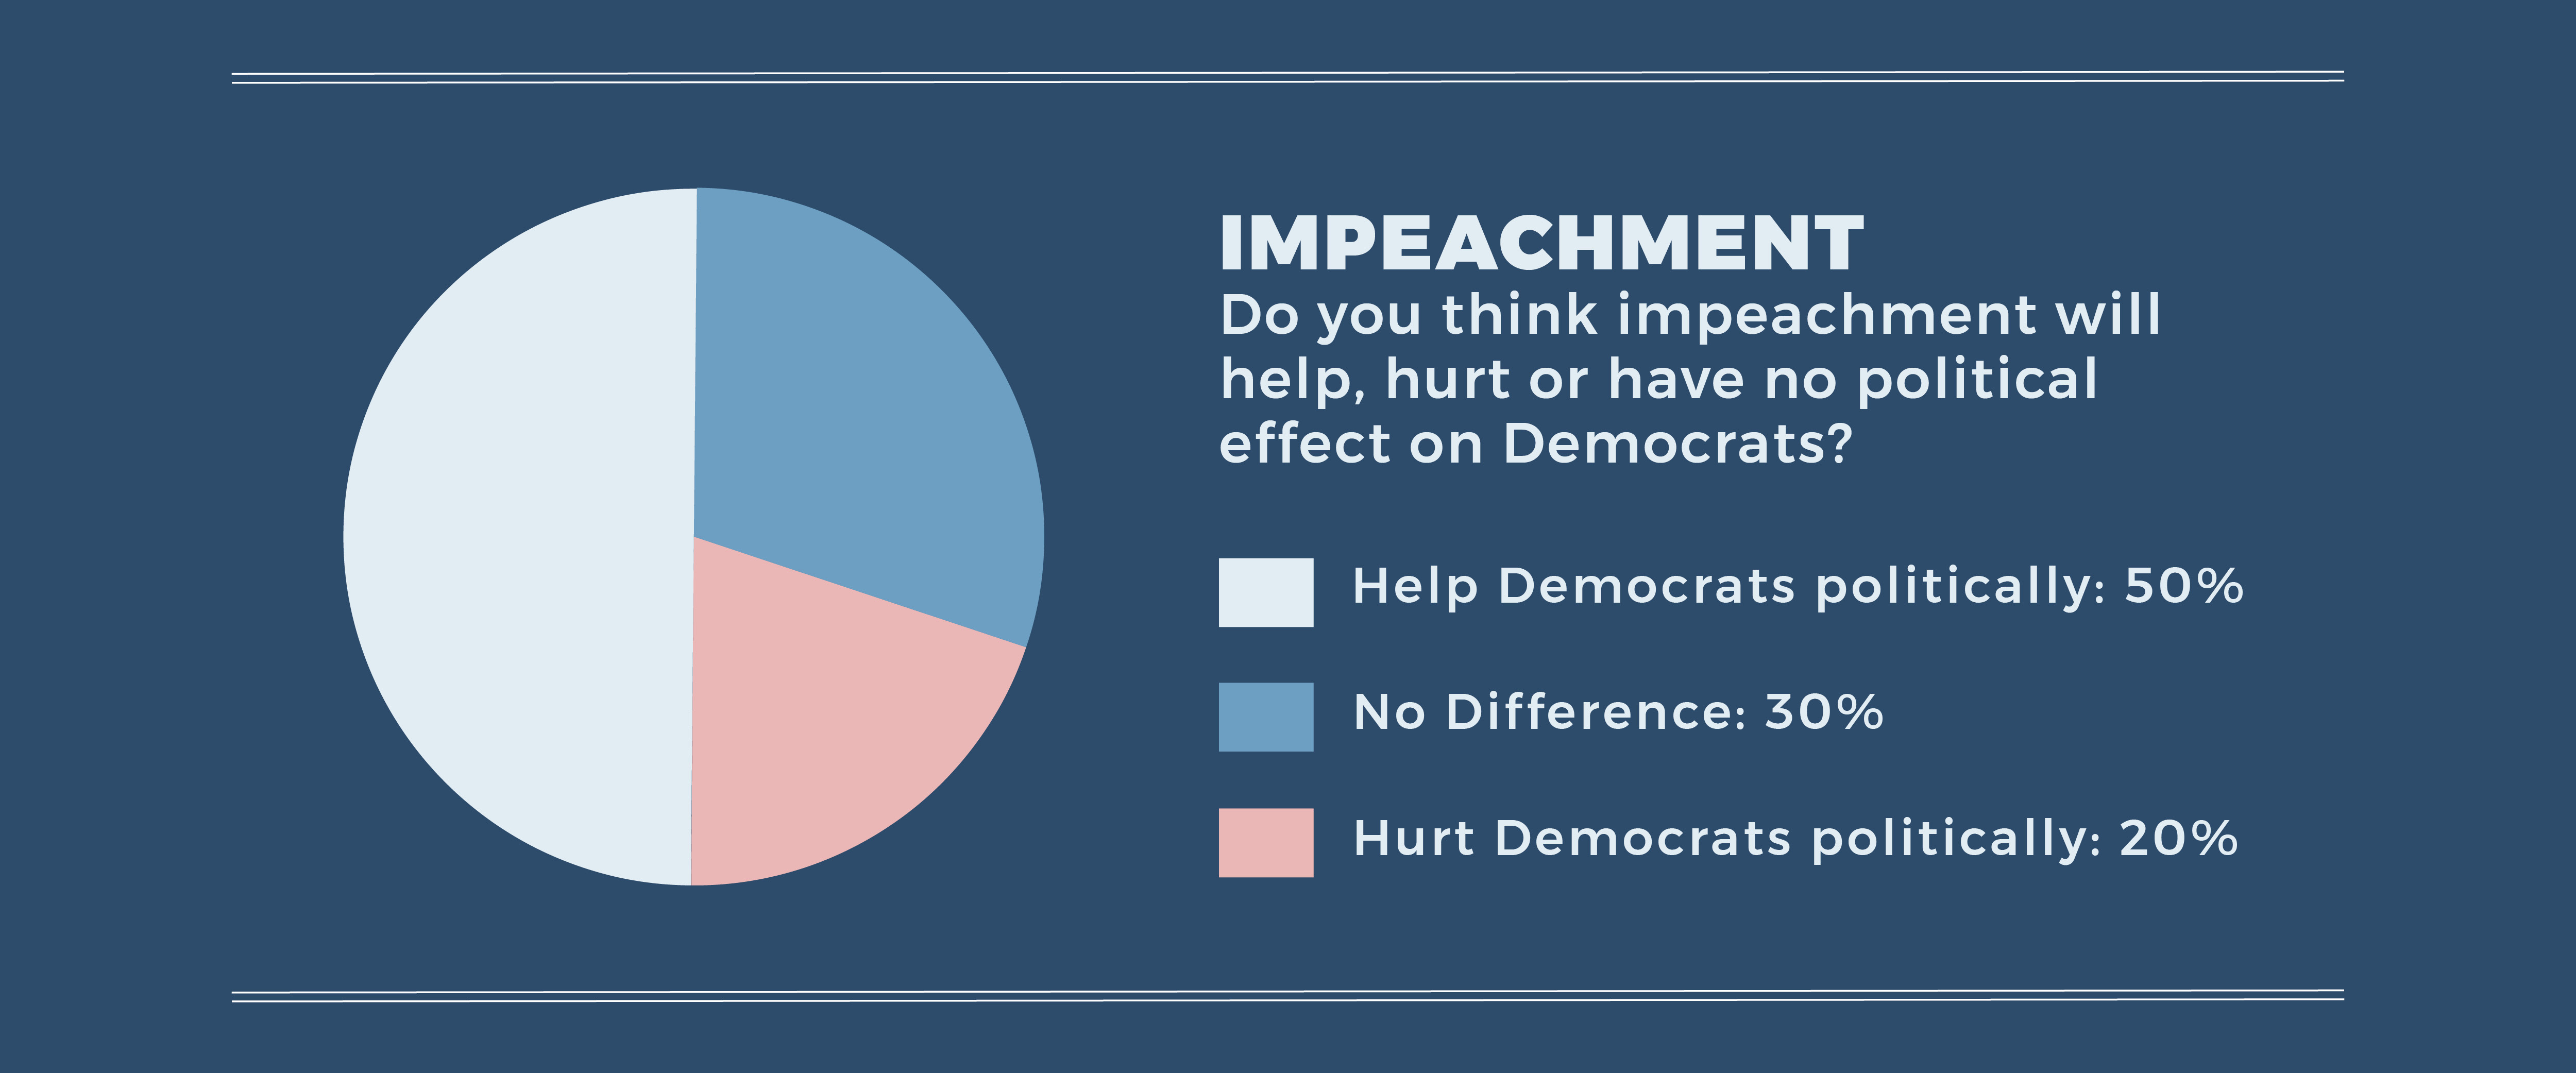 "In response to the question ""Do you think impeachment will help, hurt or have no political effect on Democrats?"" 50% of folks responded ""Help Democrats politically"", 30% of folks responded ""No Difference"", and 20% responded ""Hurt Democrats politically""."